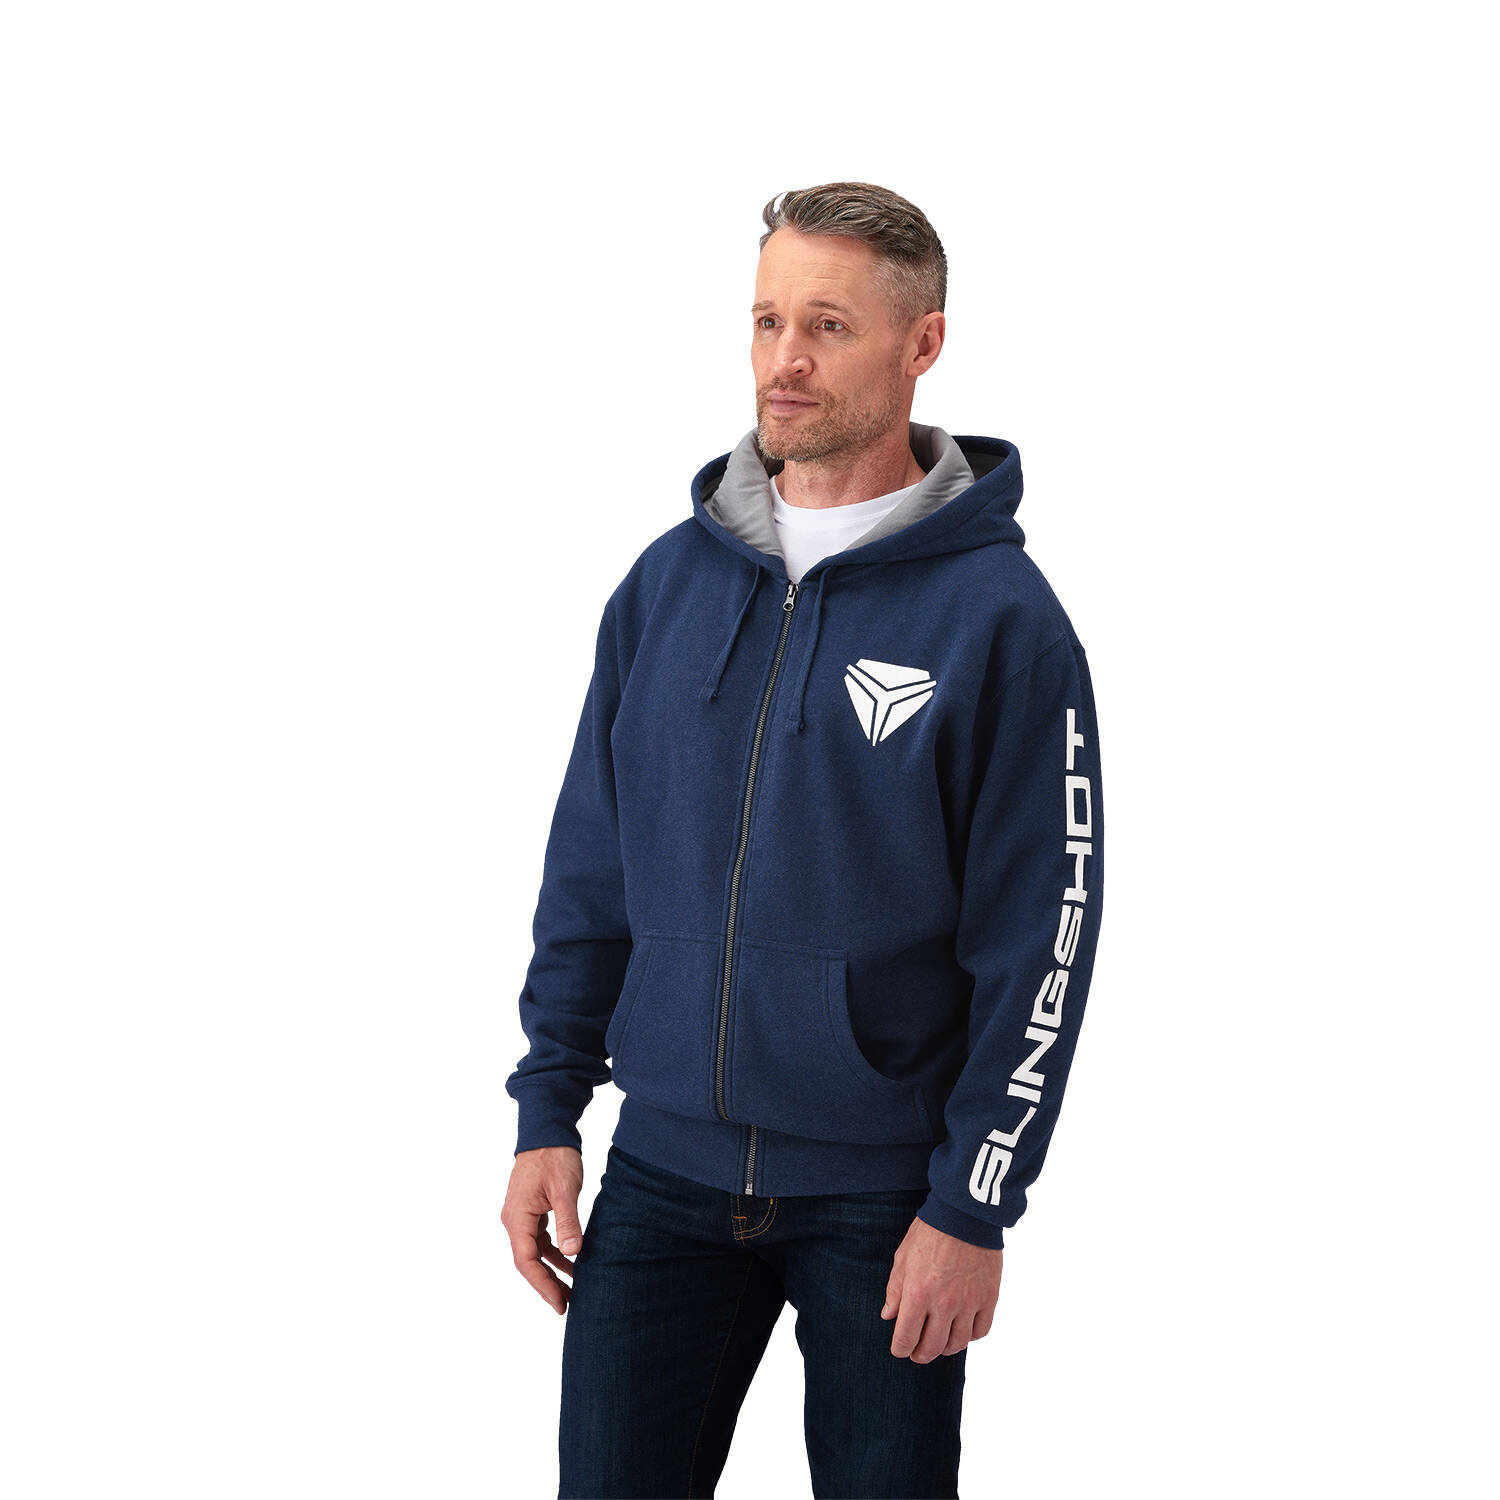 Men's Full Zip Hoodie - Navy